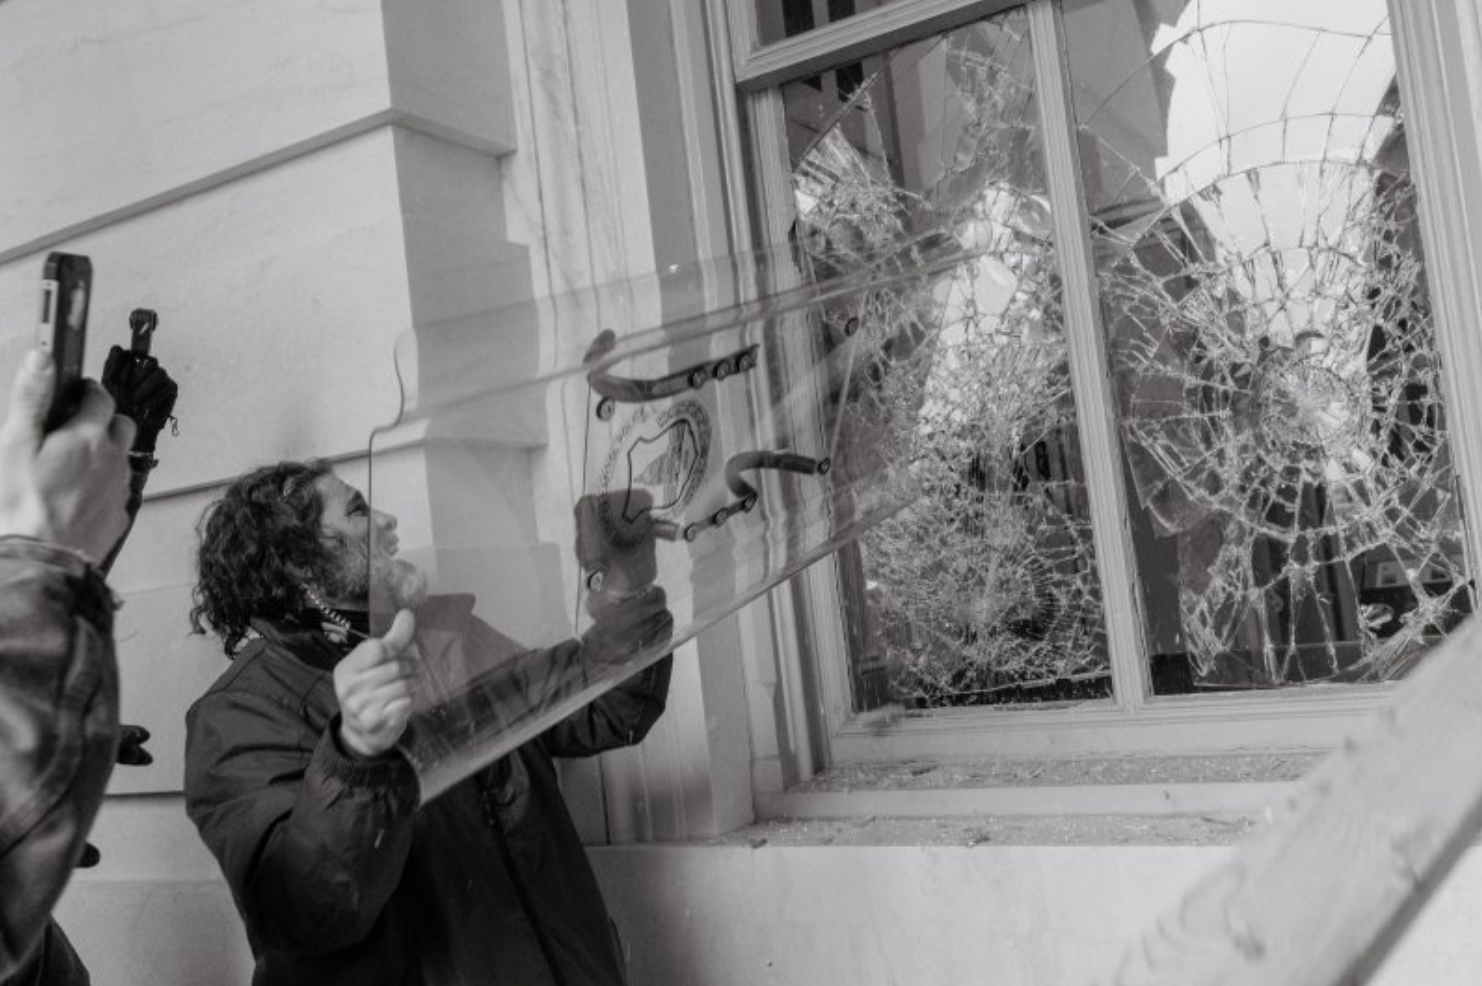 A photo of Dominic Pezzola allegedly using a riot shield to smash windows during the breach of the U.S. Capitol, as released in court documents.